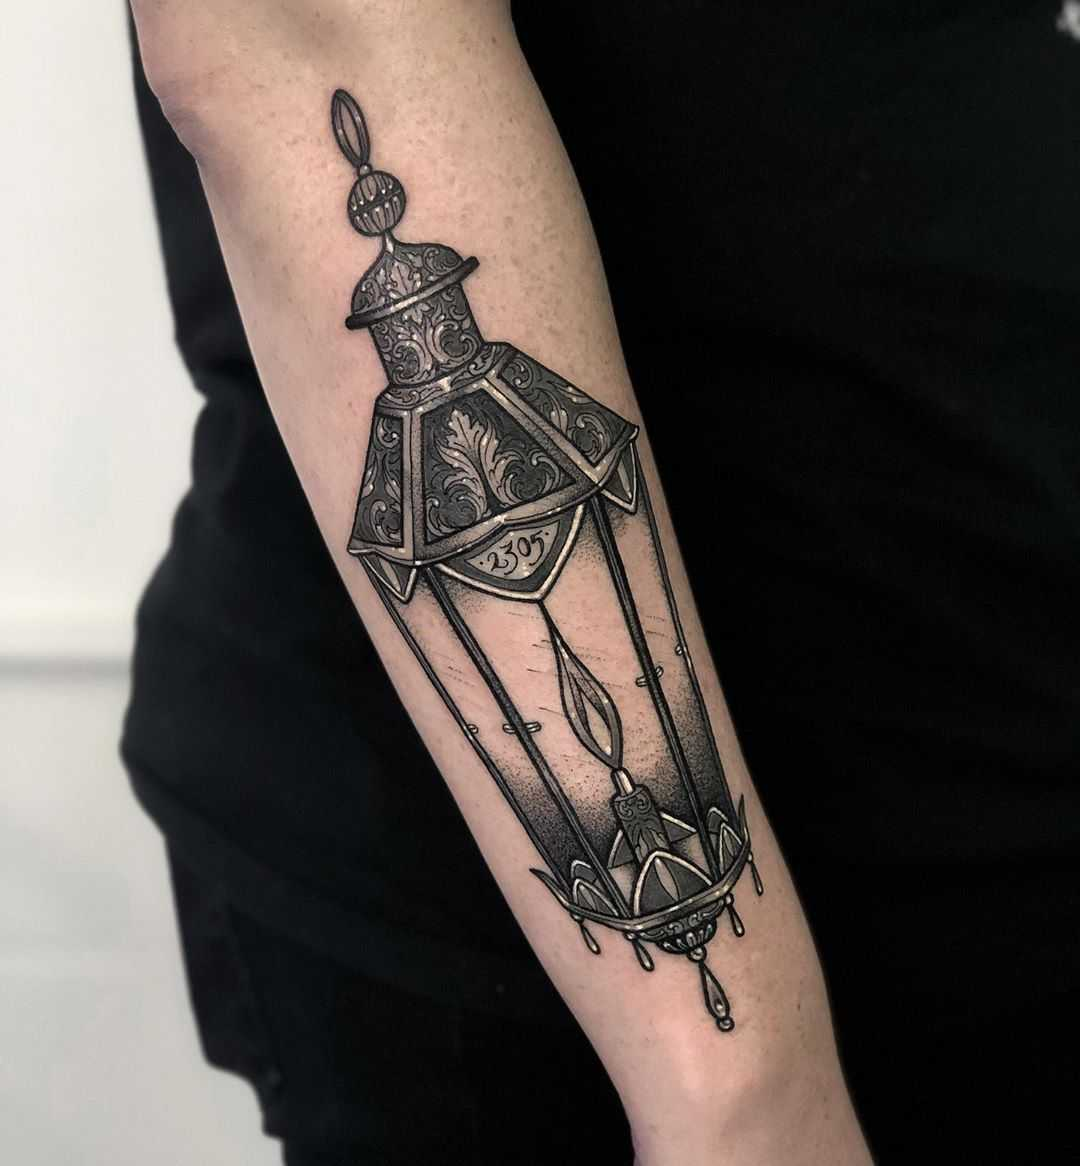 Lantern tattoo by Lozzy Bones